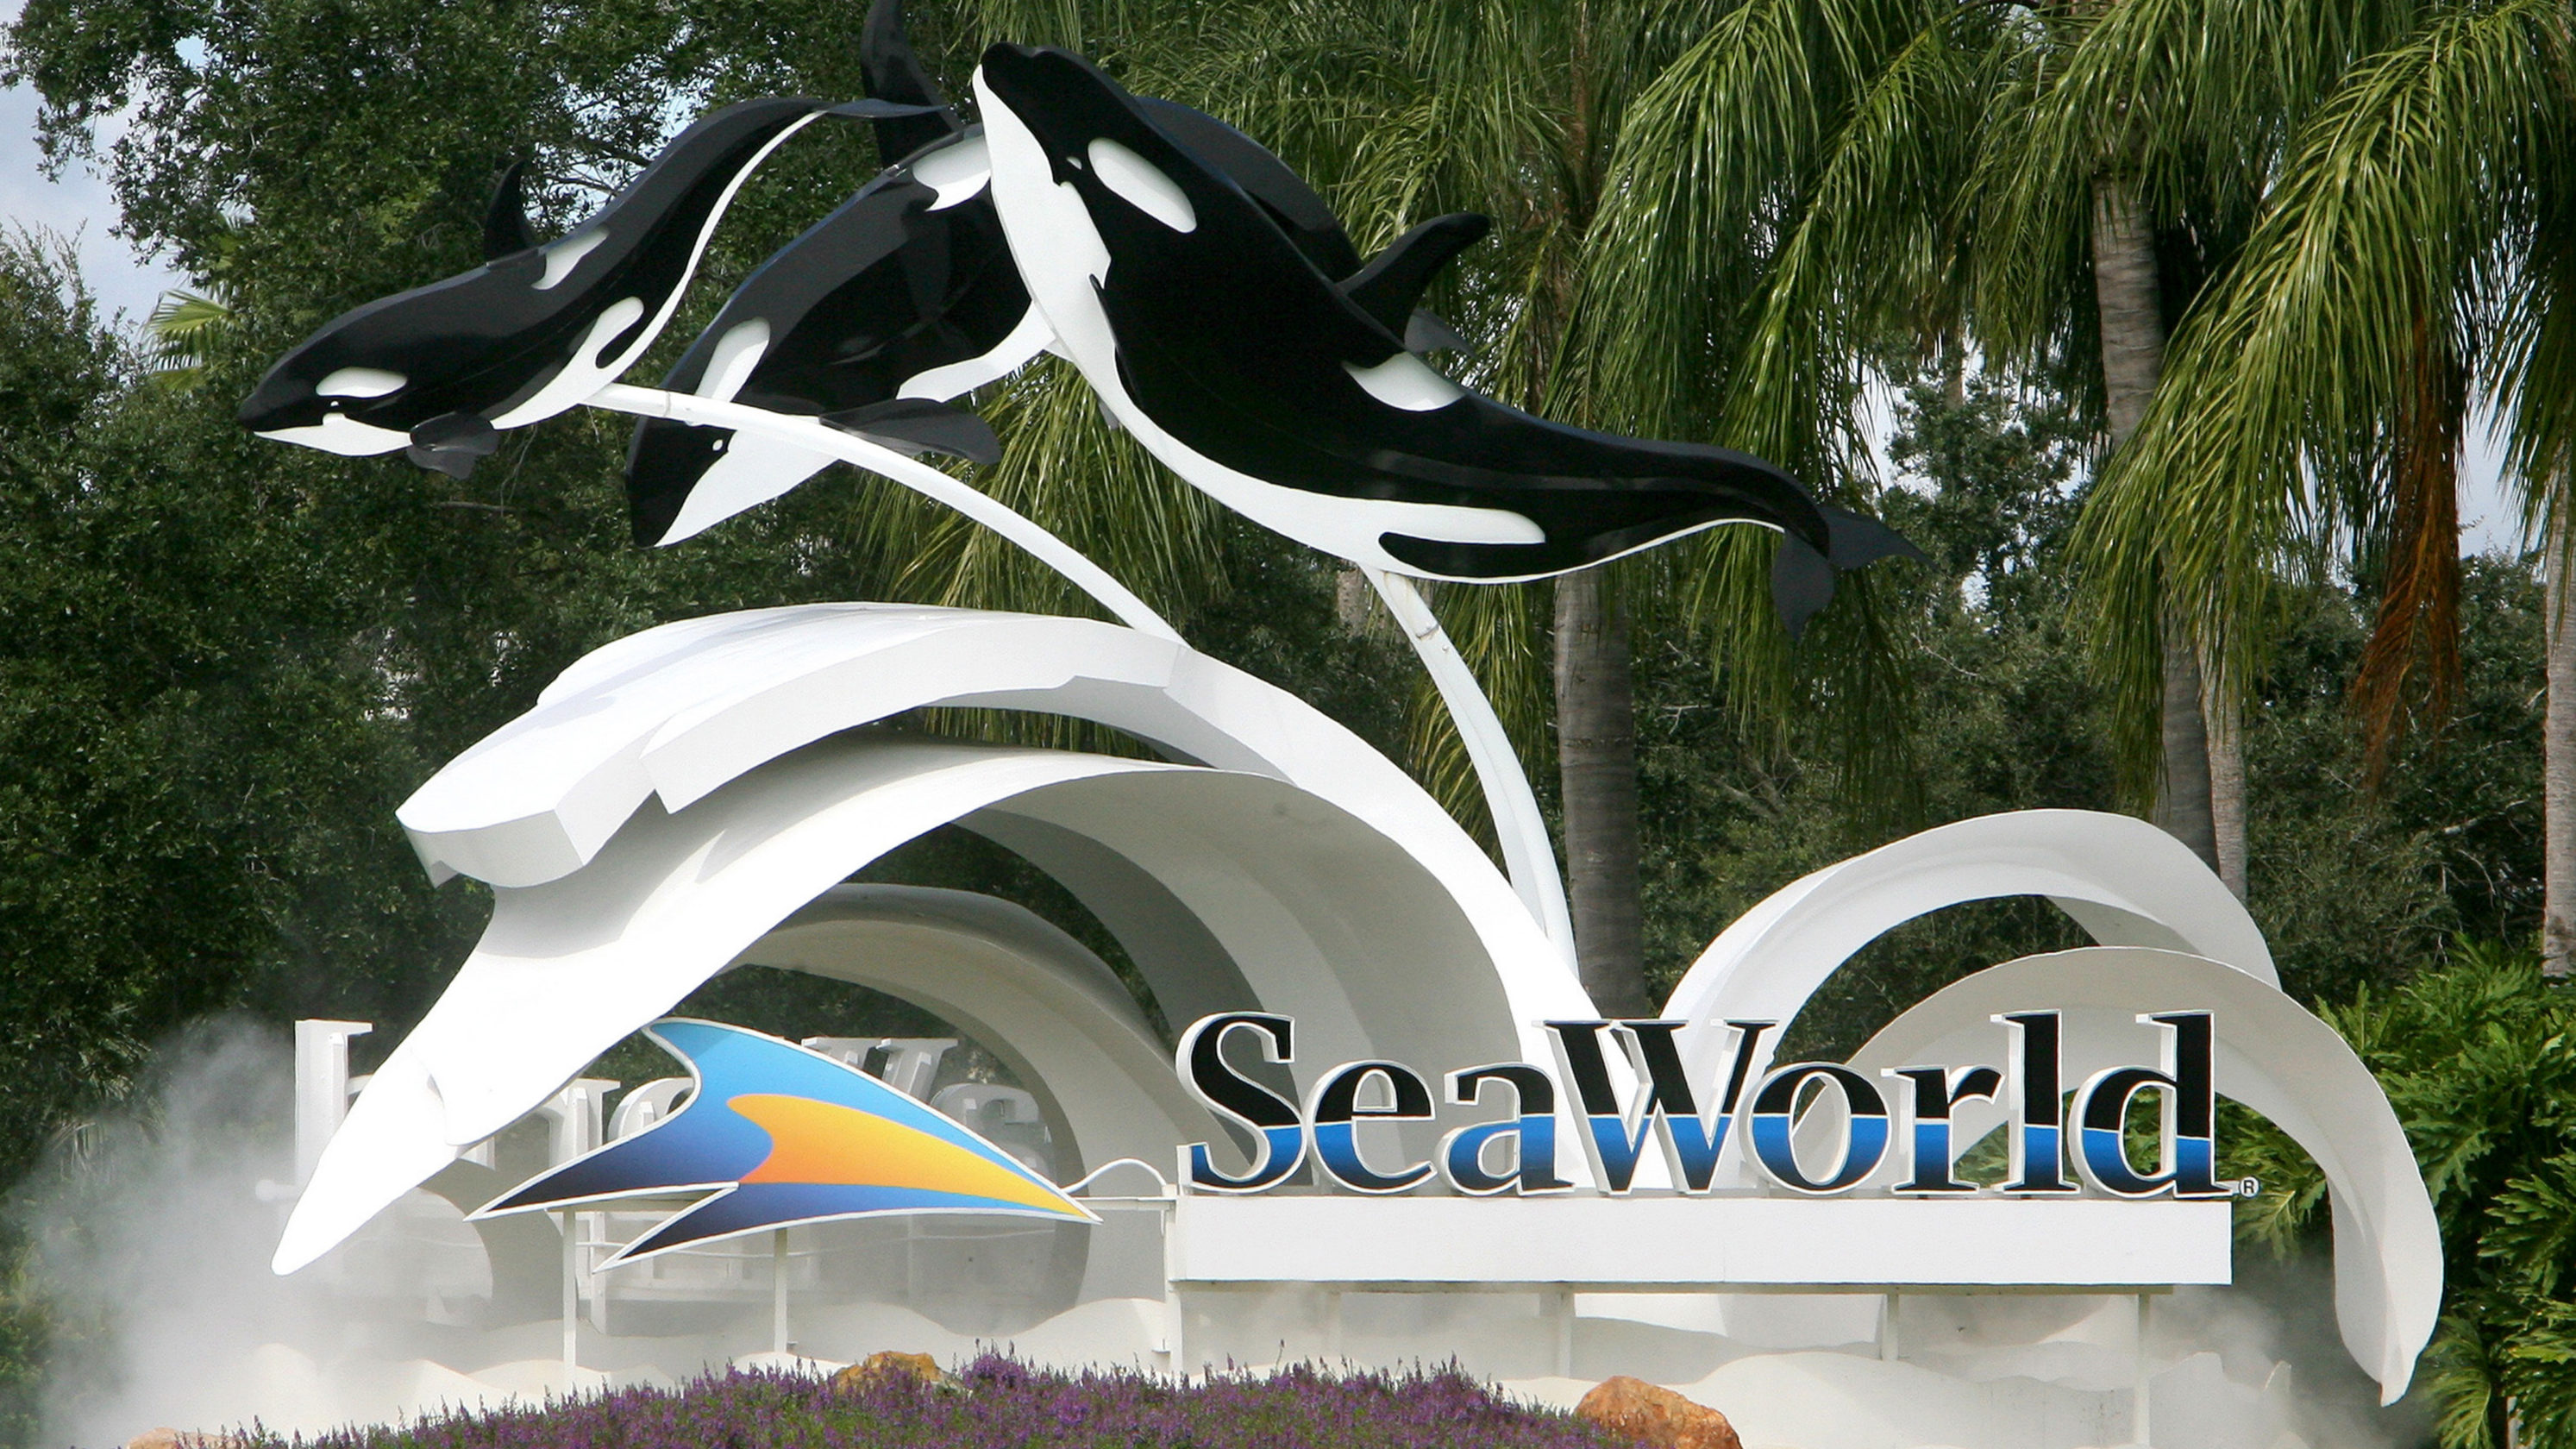 Thomas Cook To Stop Selling Tickets To SeaWorld Over Animal Welfare Concerns